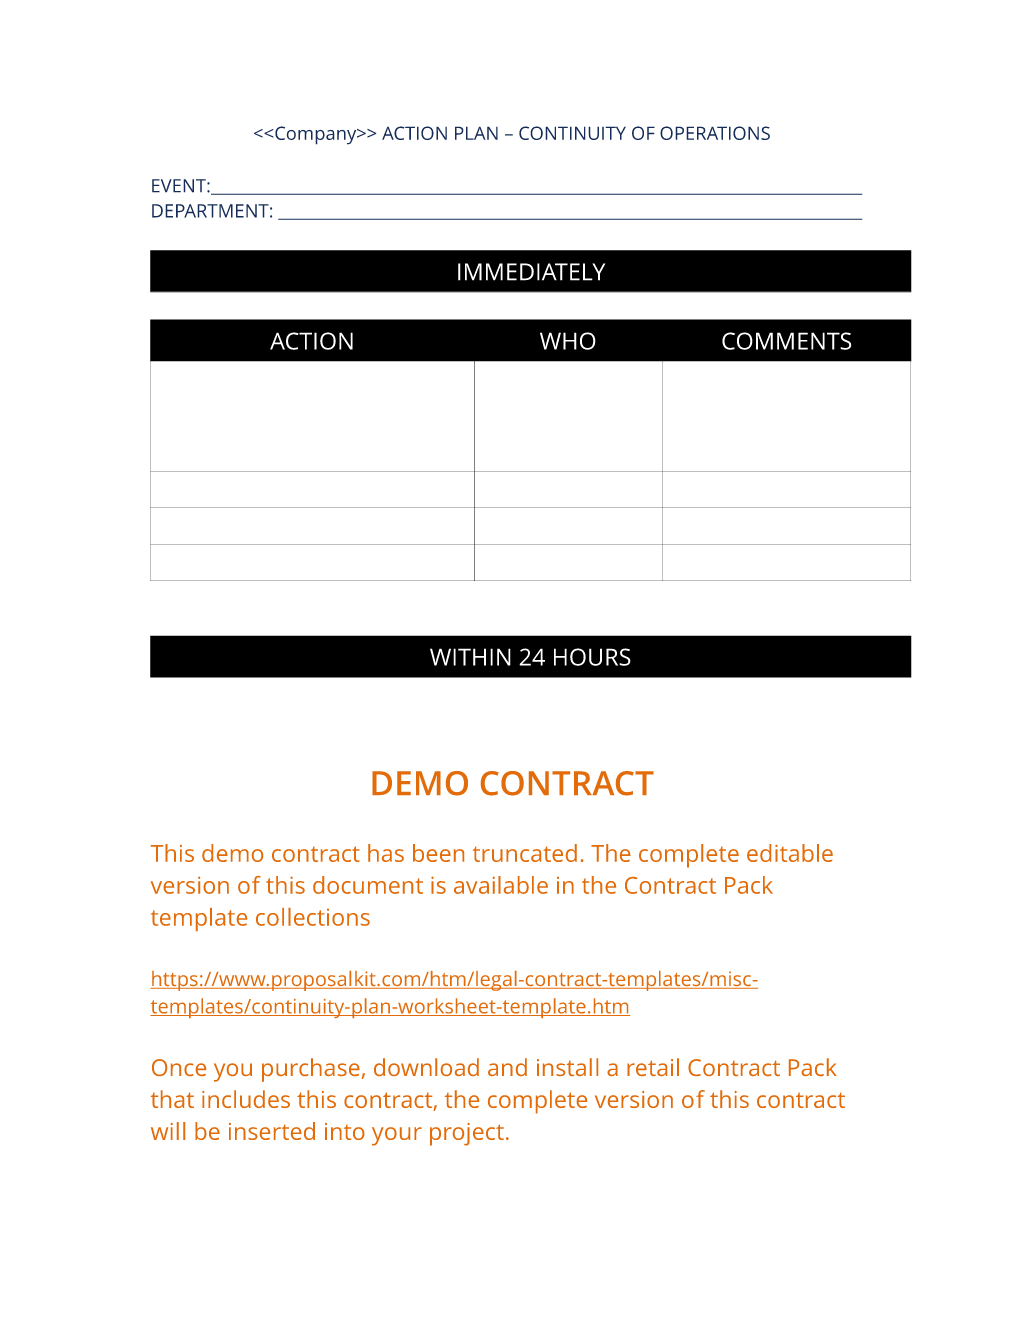 How To Write Your Own Continuity Plan Worksheet